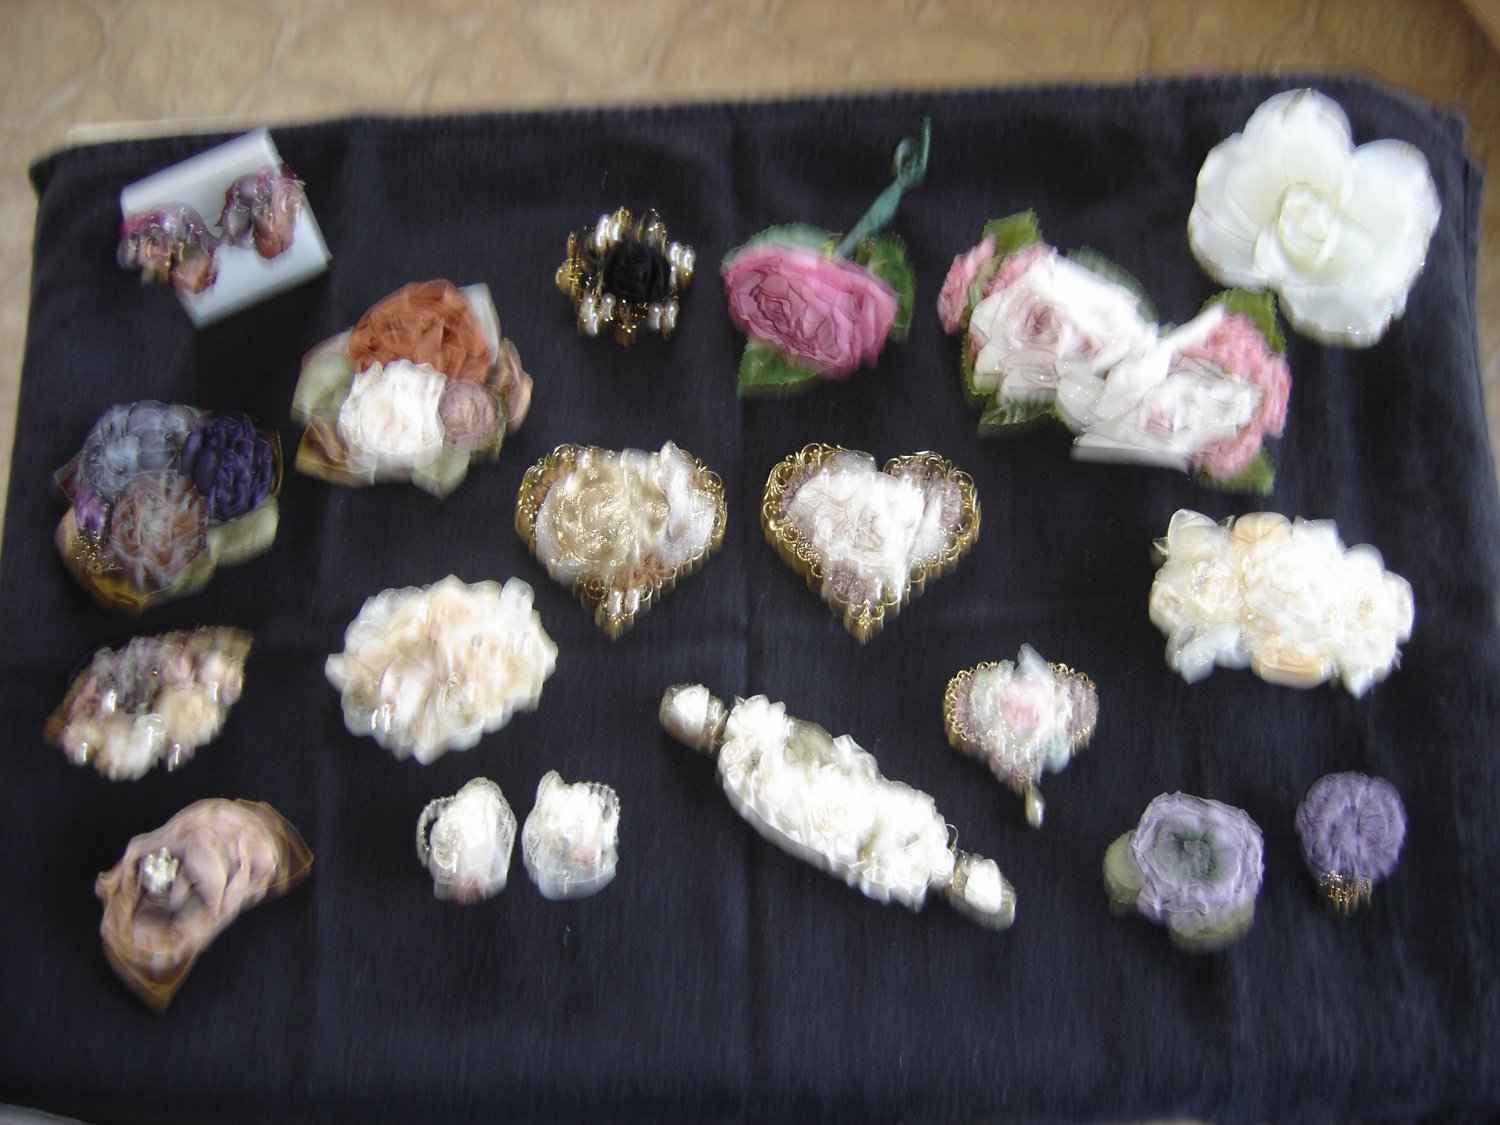 LOT of 20 pieces of FABRIC FLOWER ACCESSORIES by ANN LOGAN, MARGOT and ORIGINAL MO!